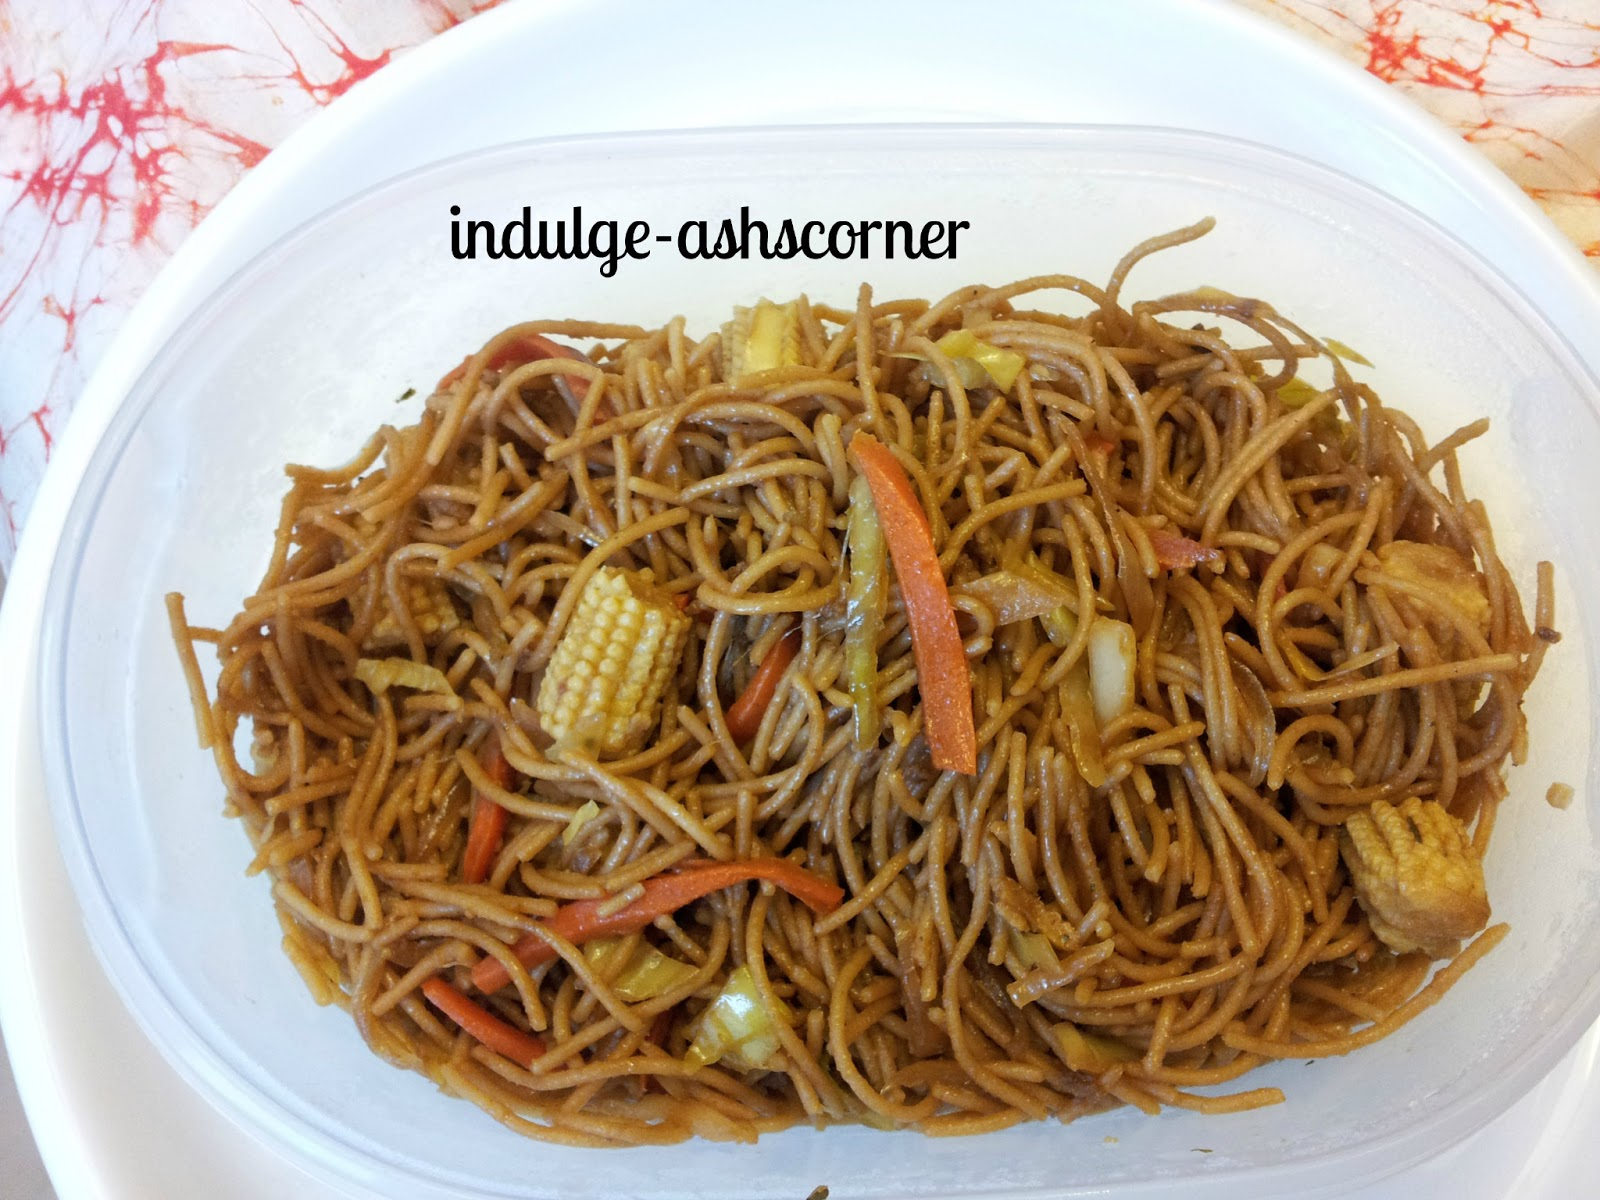 Indulgeashscorner Kids Lunch Box Vegetable Wheat Noodles